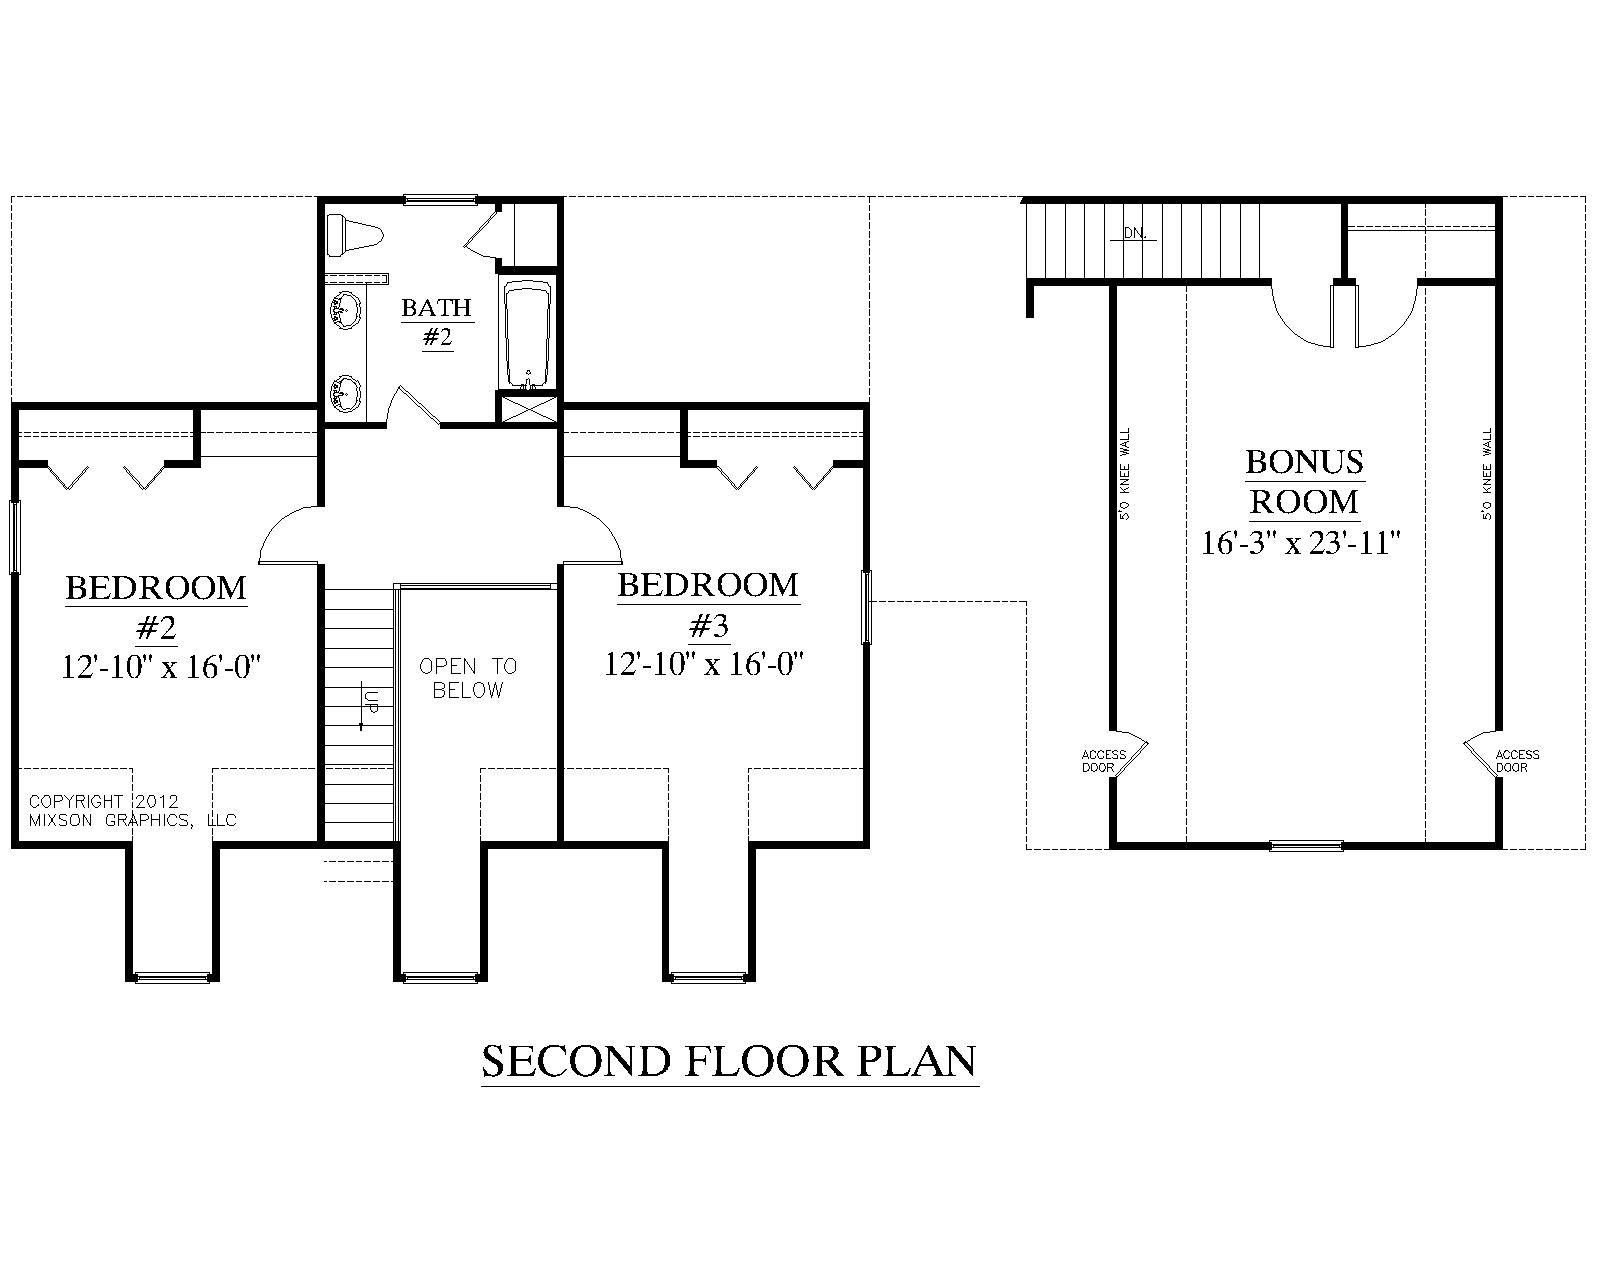 House plan 2091 b mayfield b second floor plan for 2nd story house plans